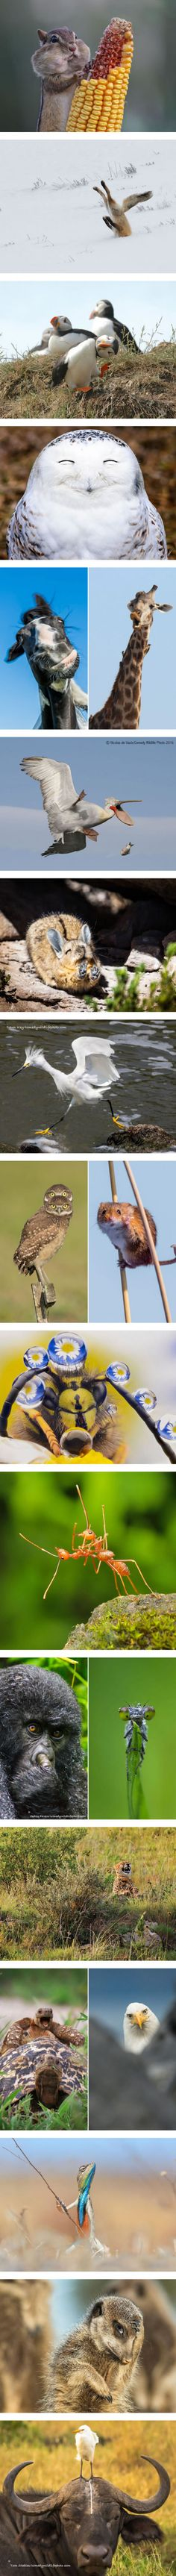 2016 Comedy Wildlife Photography Awards (By Comedy Wildlife Photography)